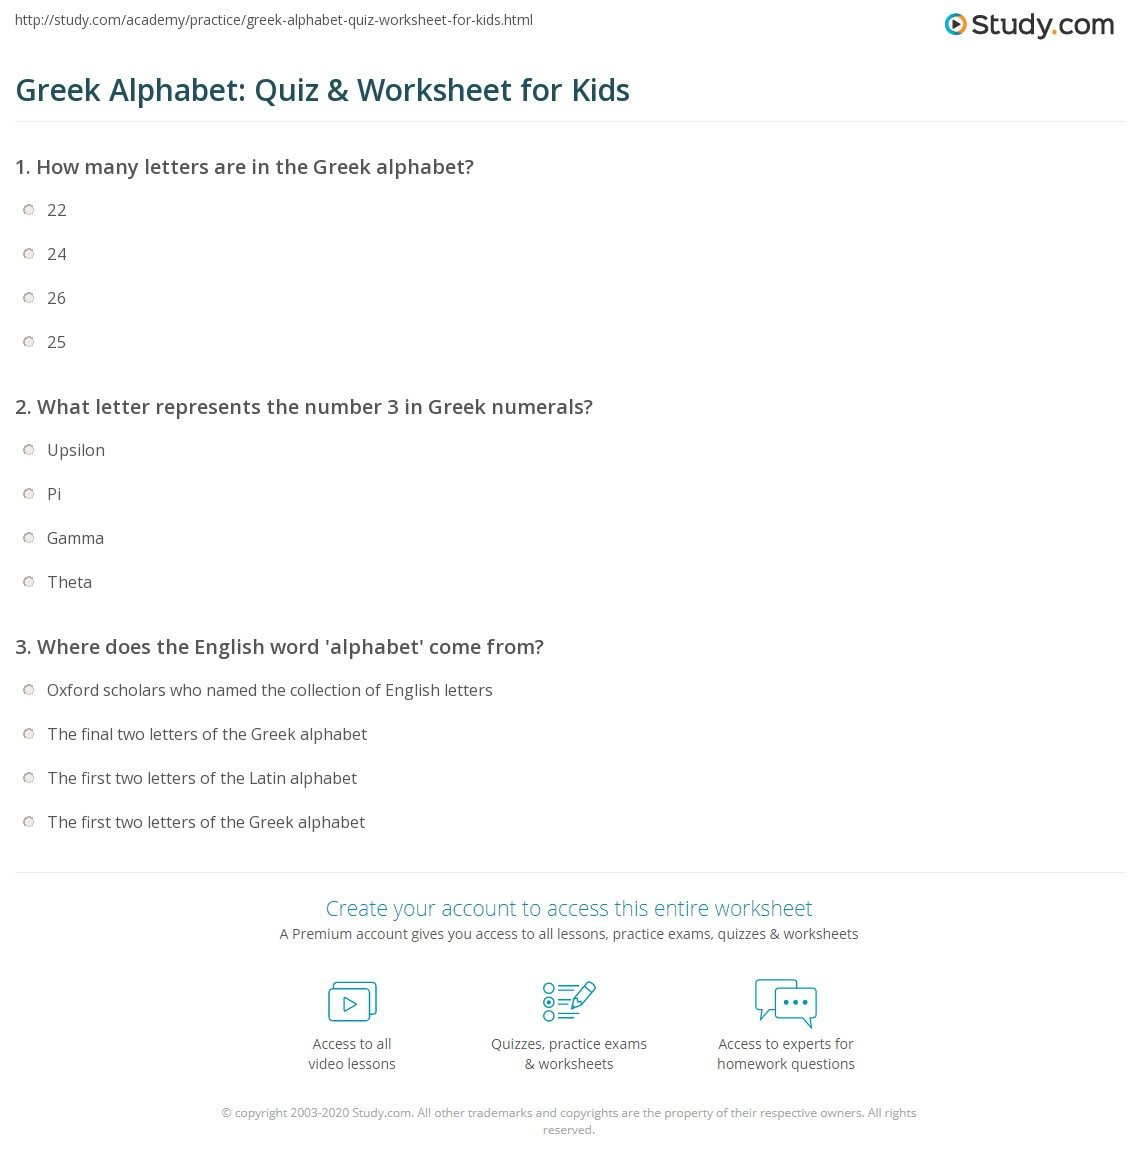 Greek Alphabet Quiz Worksheet for Kids – Greek Alphabet Worksheet